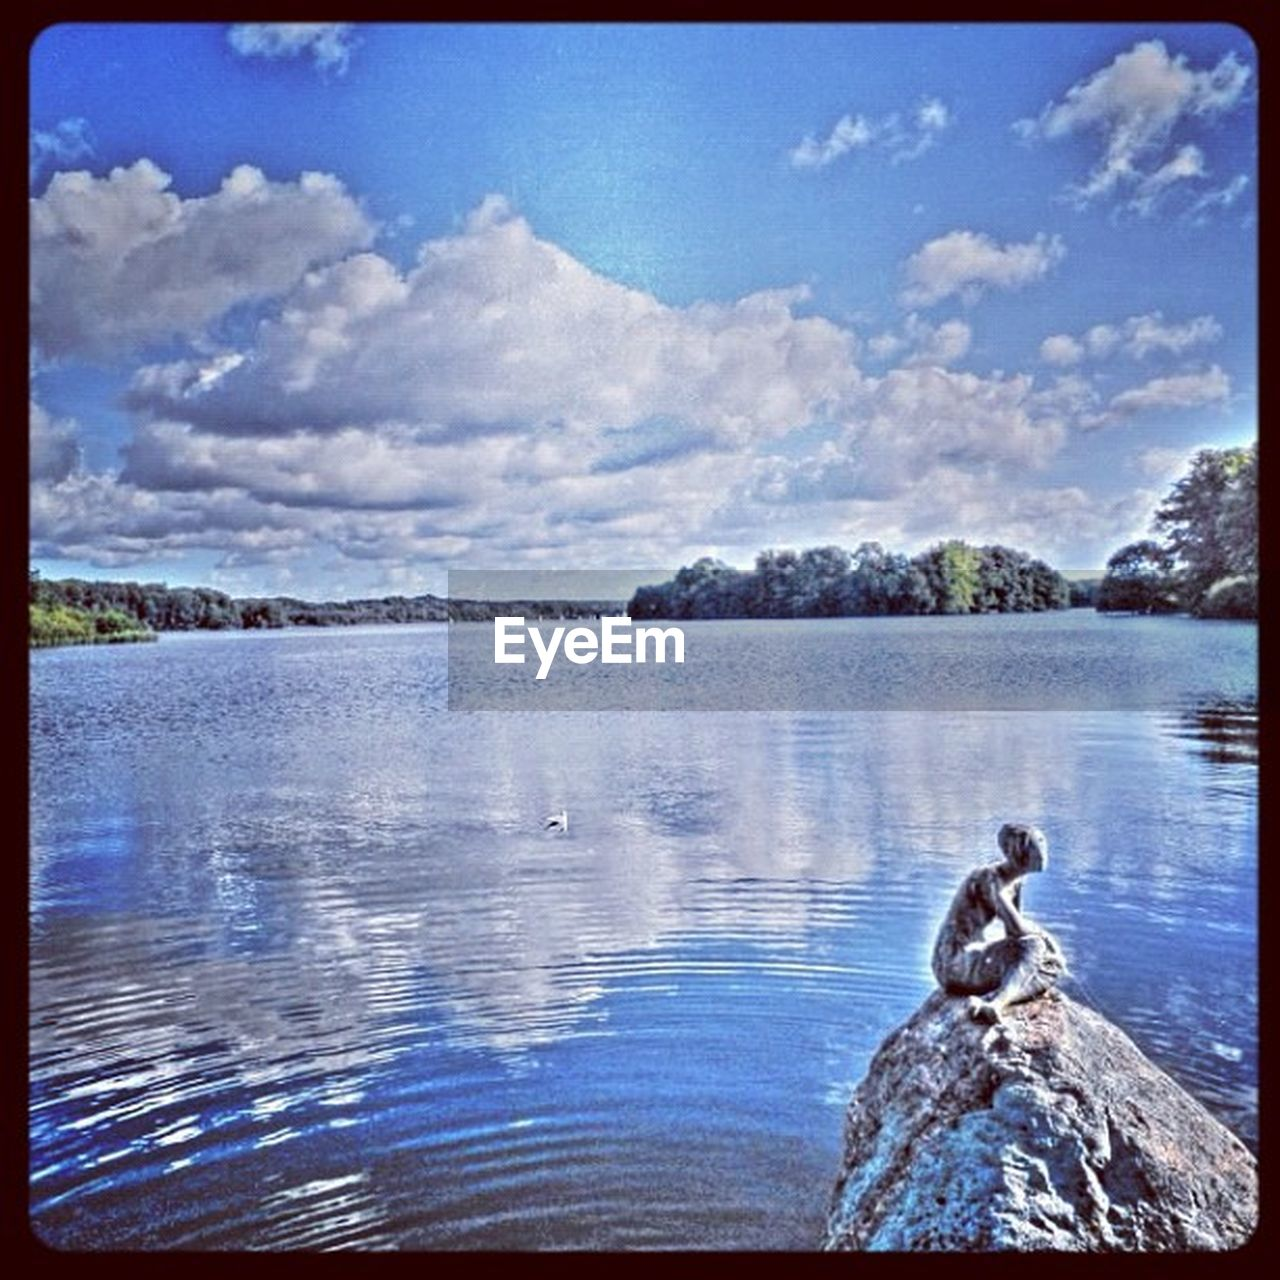 water, lake, one animal, sky, outdoors, animal themes, no people, day, animals in the wild, cloud - sky, nature, scenics, tranquil scene, beauty in nature, blue, tree, swimming, bird, swan, close-up